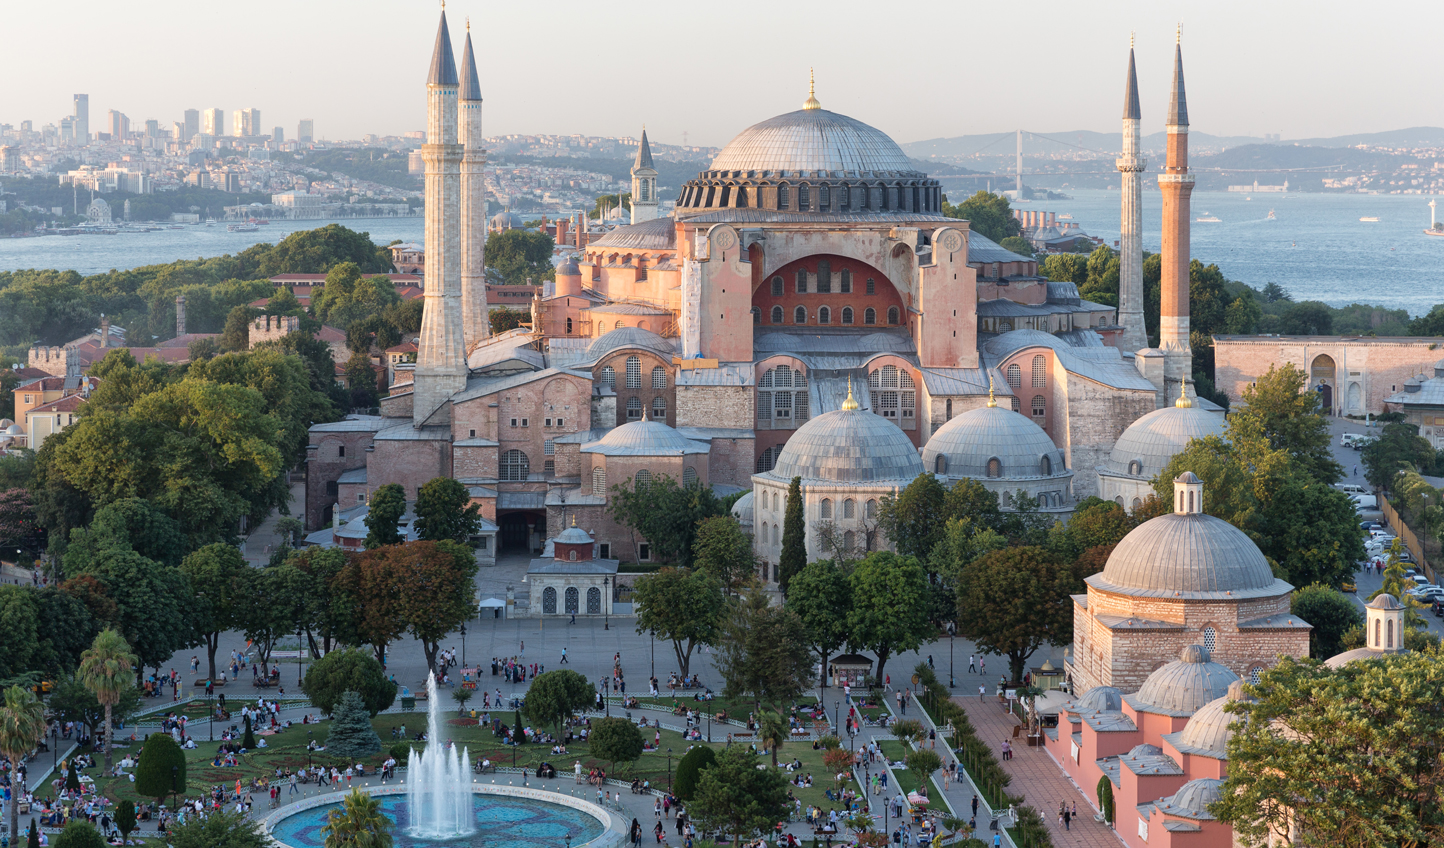 Hit up the historic Hagia Sophia